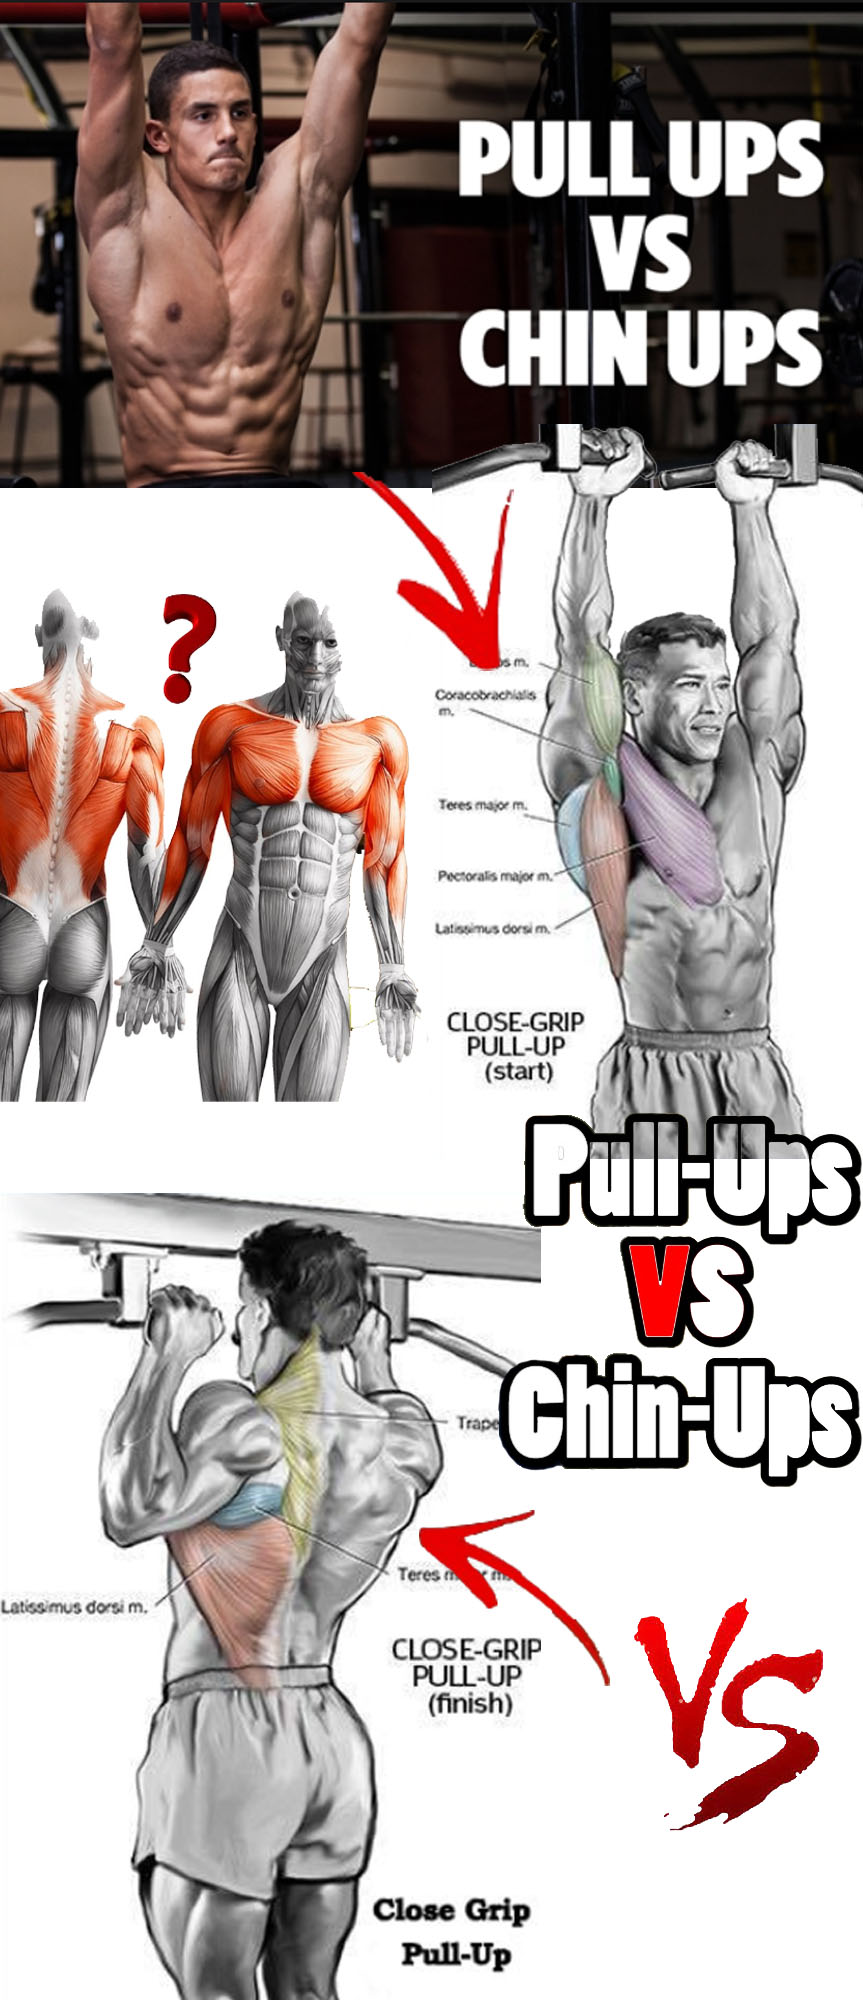 How to Pull ups vs Chin ups